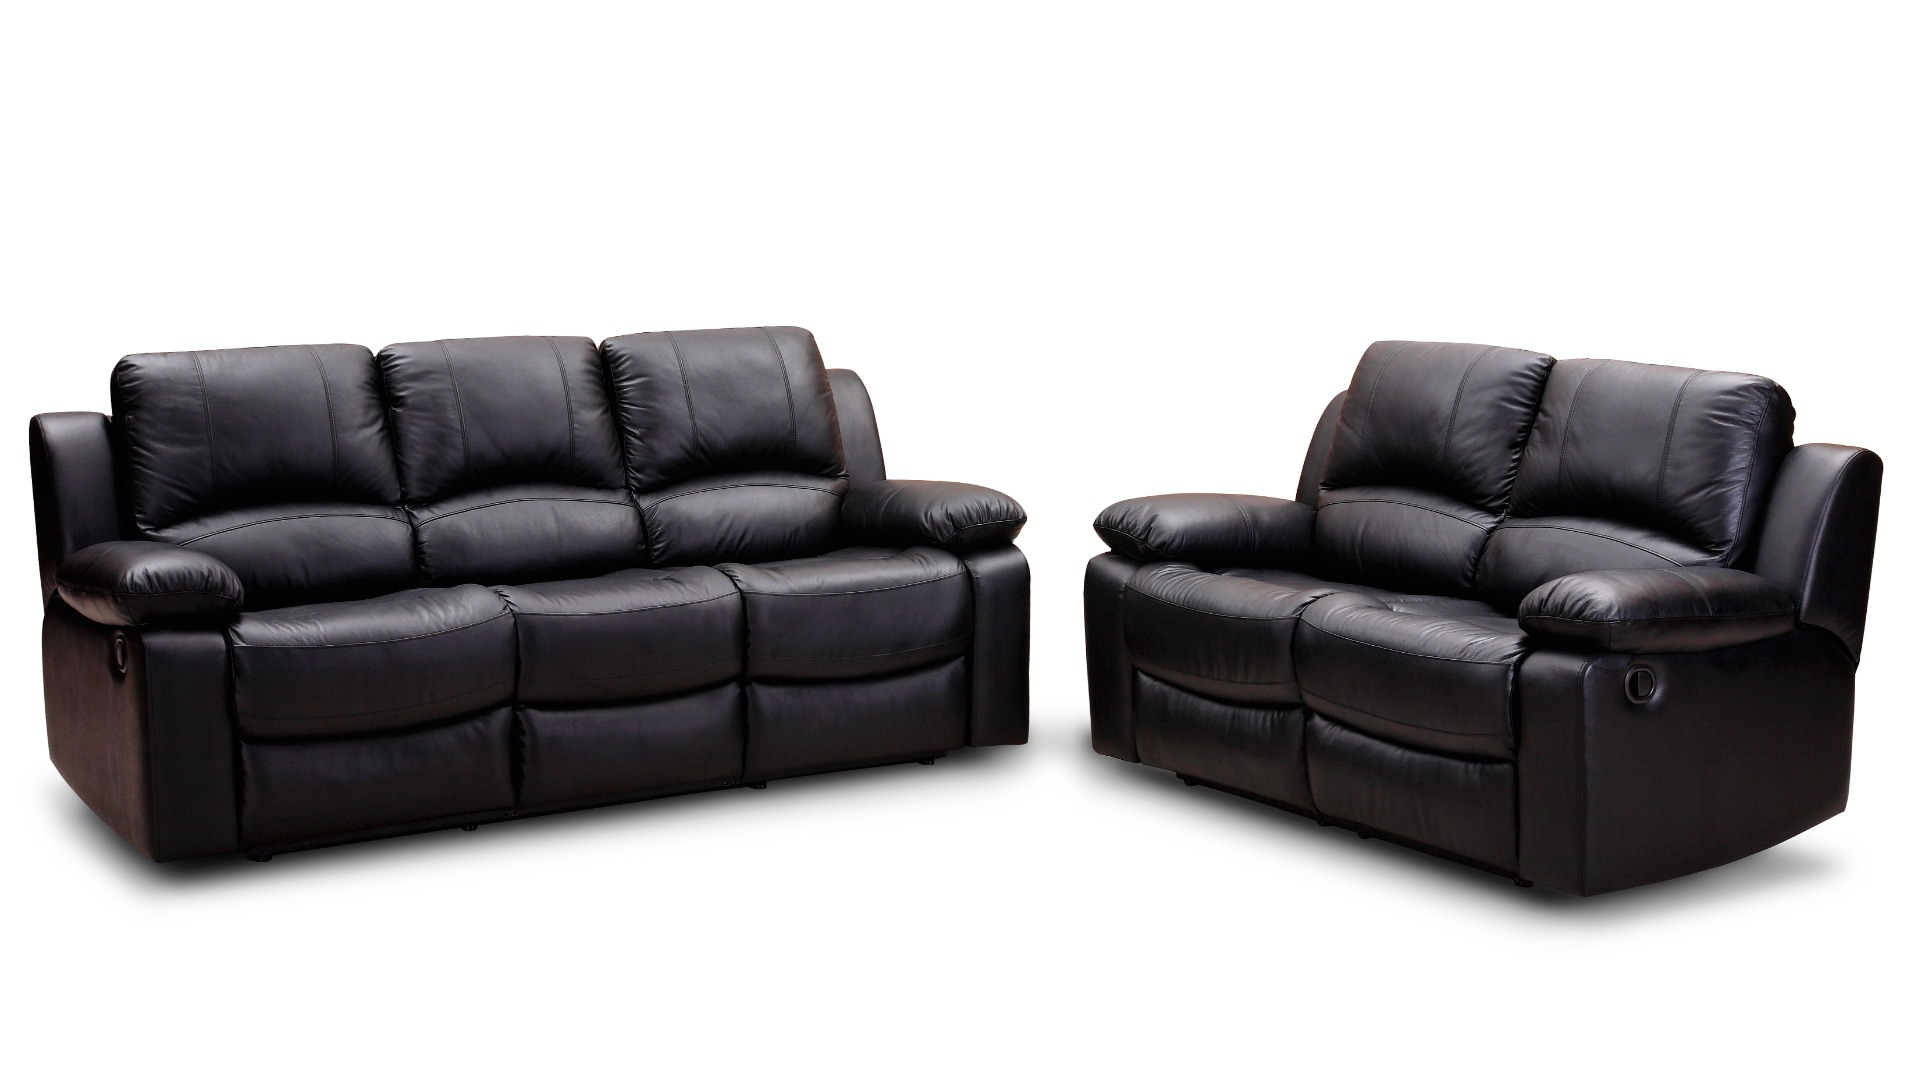 Black leather padded cushion couch near to black leather - Modelos de sofas ...